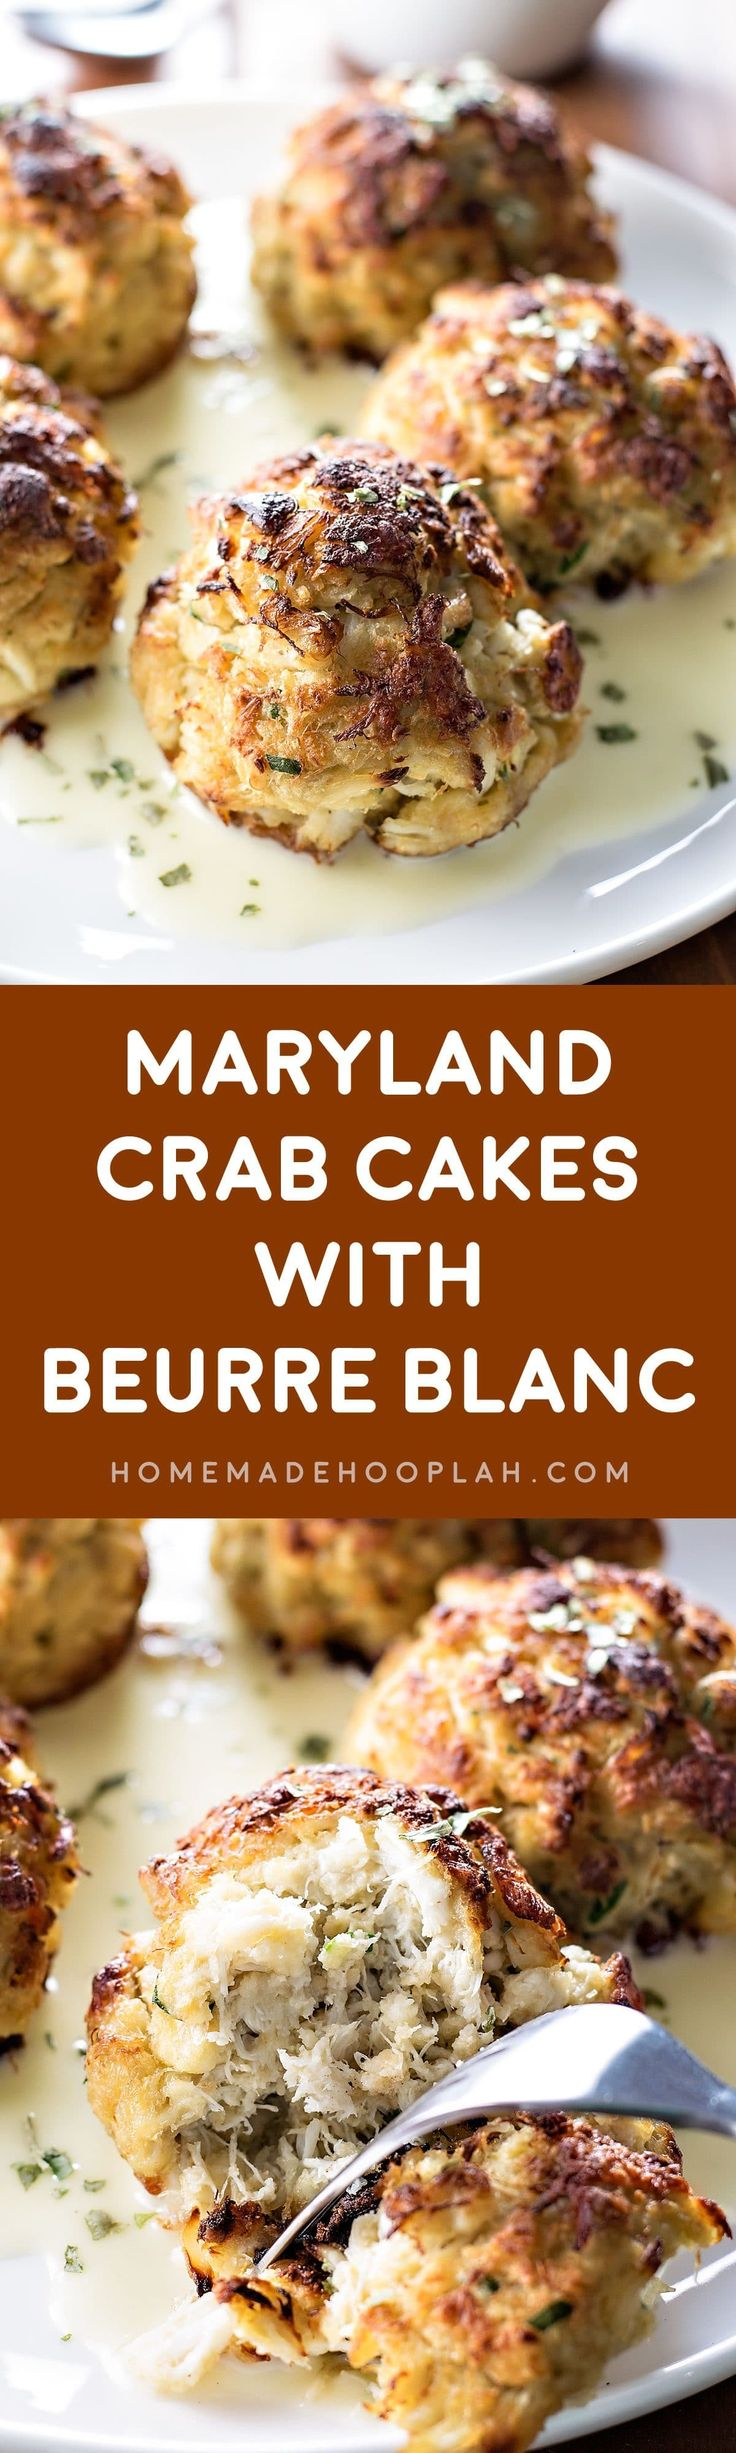 "Maryland Crab Cakes with Berrue Blanc! If you love the ""crab"" in crab meat, then this is the recipe for you: minimal breading and a light sauce makes the crab meat the star of this dish. 